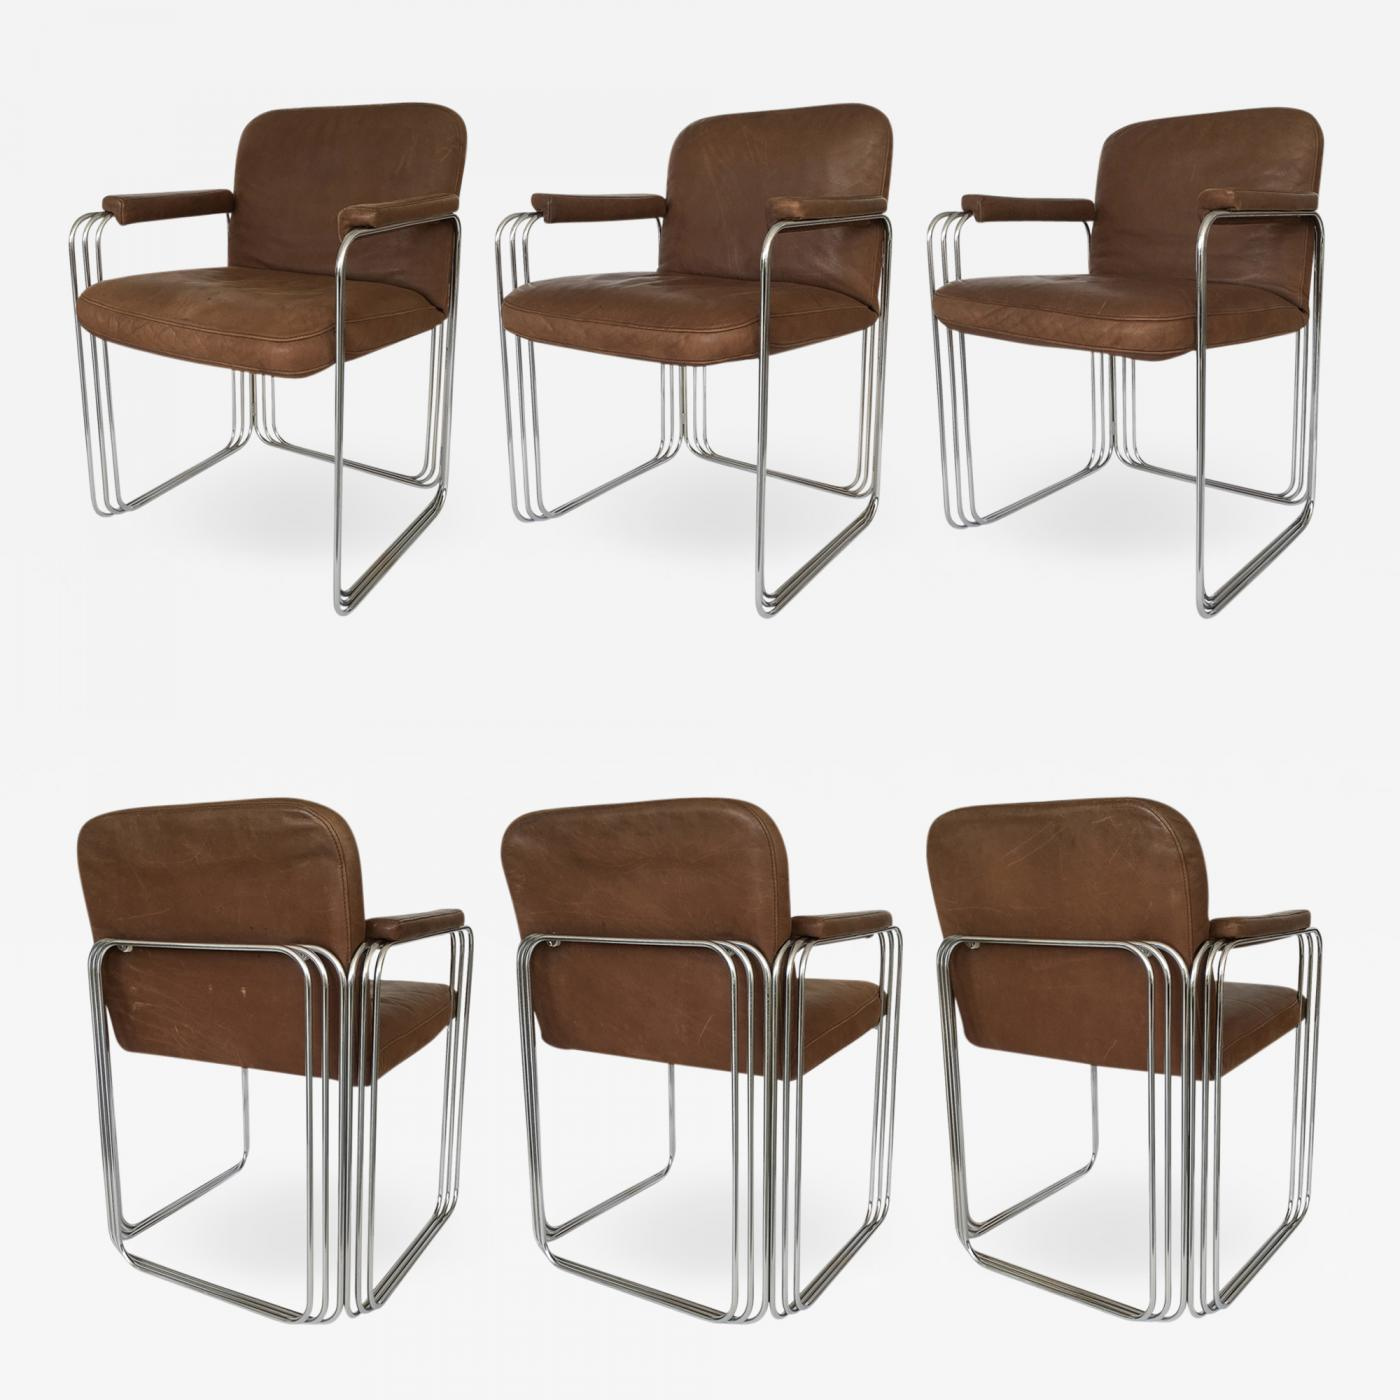 Cool Pace Collection Set Six Chrome And Leather Dining Chairs Attributed To Pace Collection Beatyapartments Chair Design Images Beatyapartmentscom